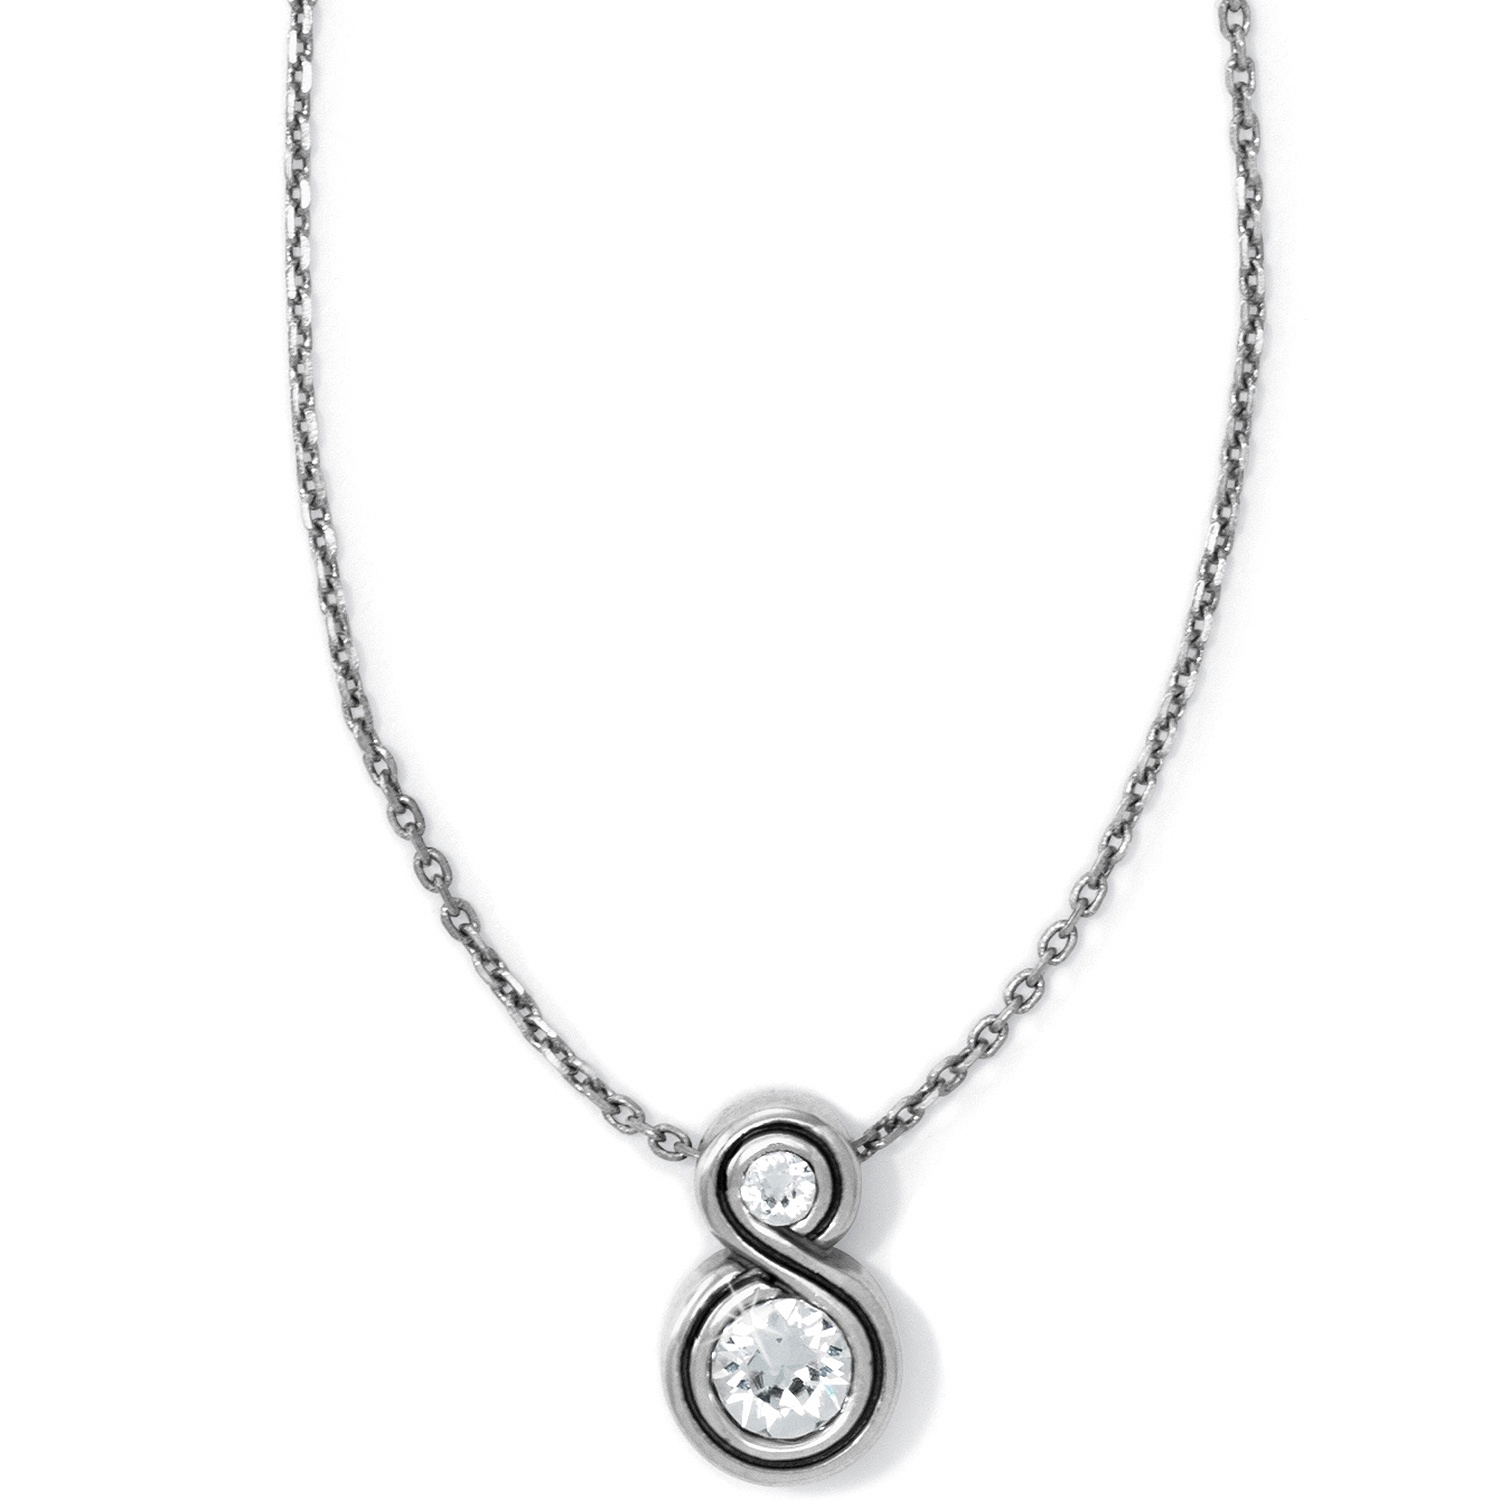 Infinity Sparkle Petite Necklace Within Recent Square Sparkle Halo Pendant Necklaces (View 16 of 25)